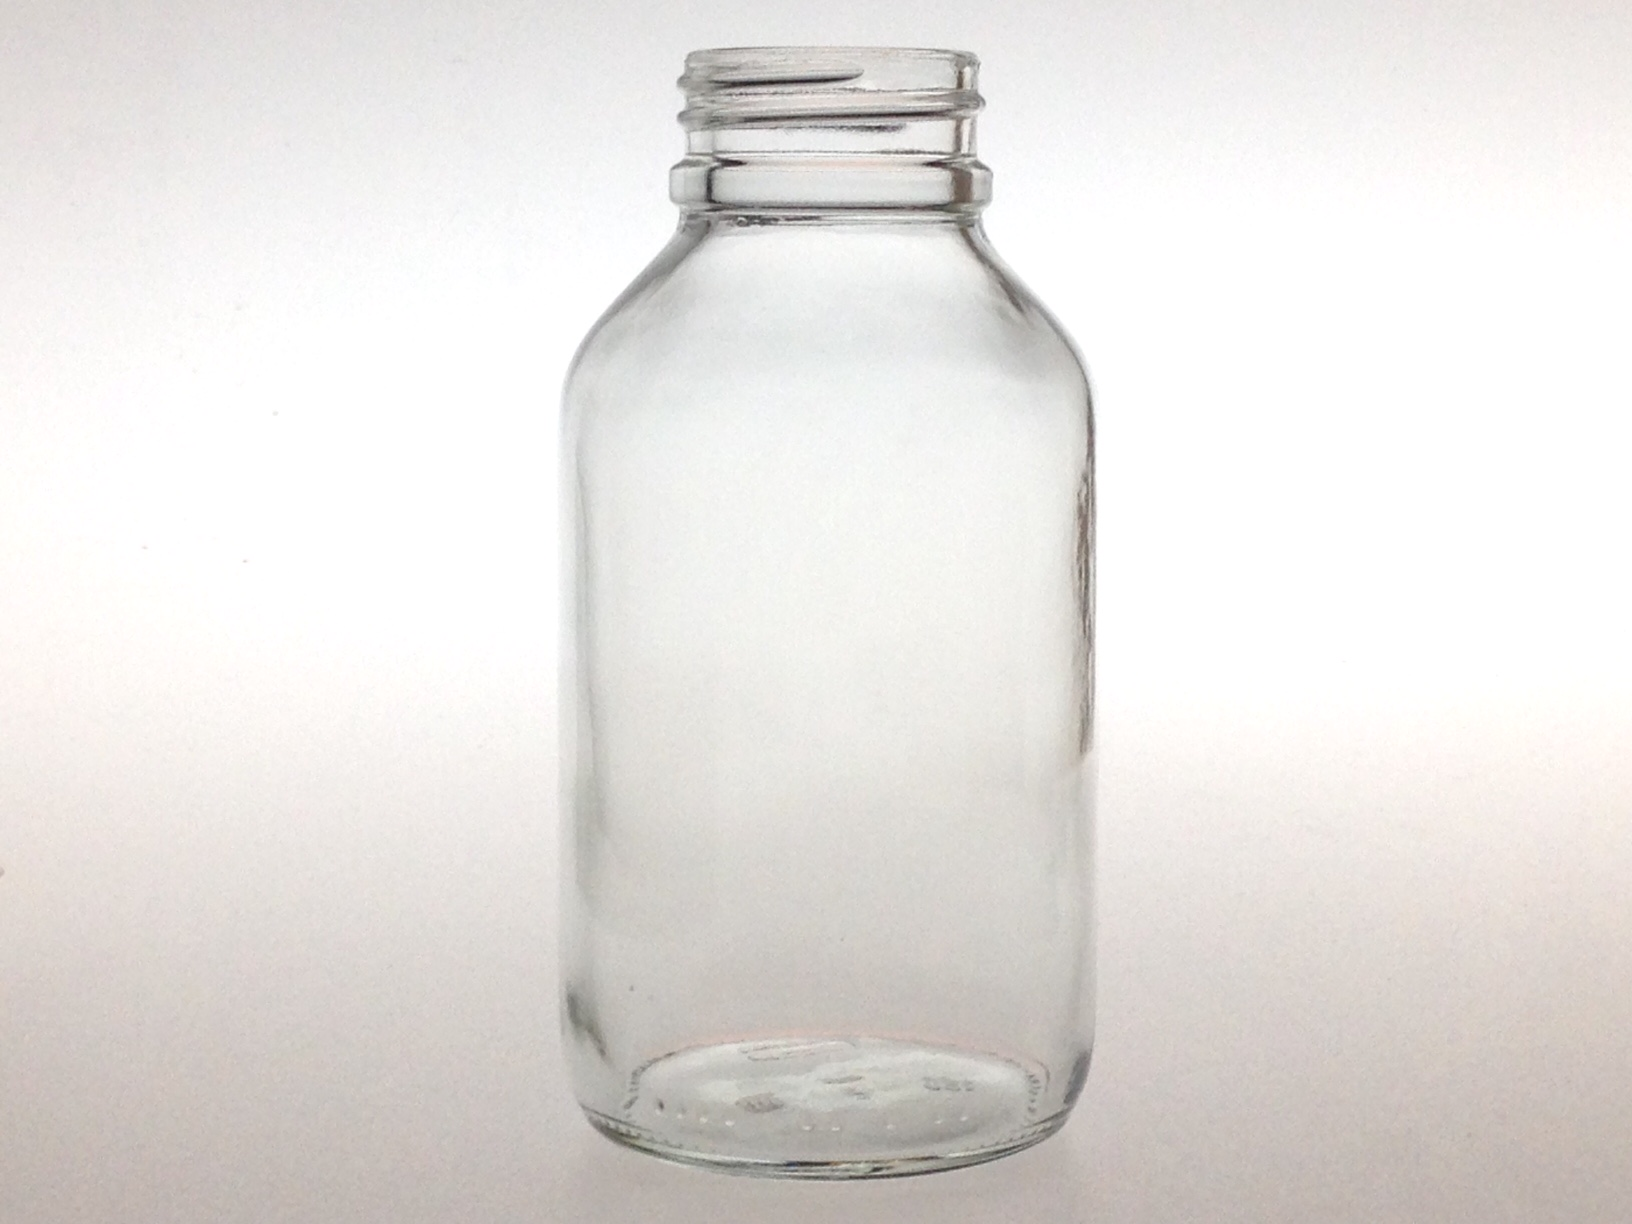 WIDE MOUTH CLEAR GLASS 250 ML BOTTLE PH 35